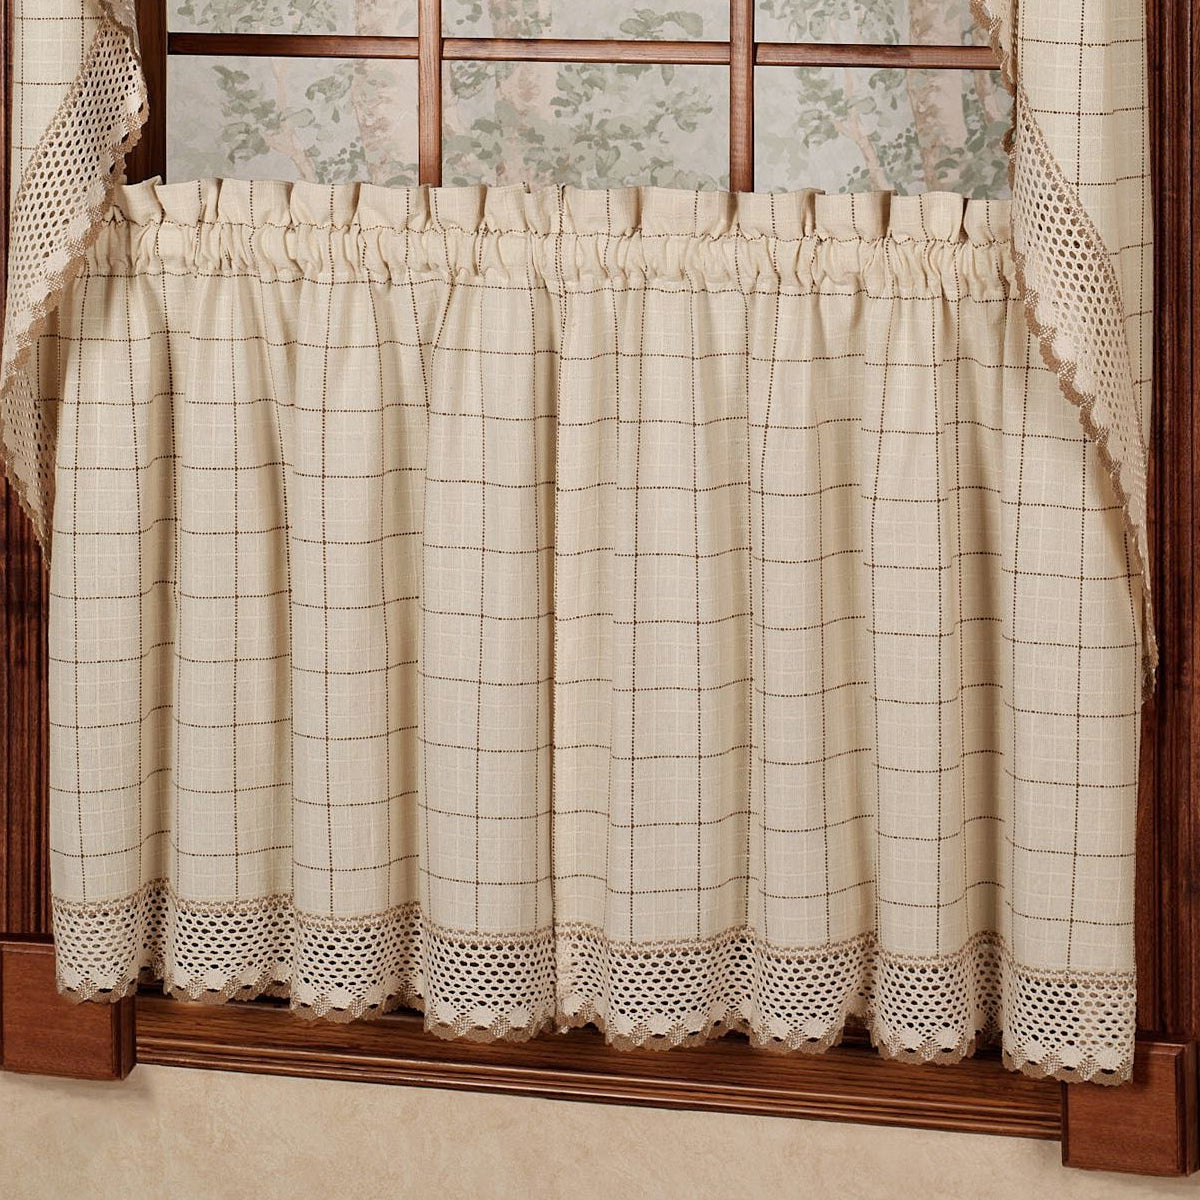 French Vanilla Country Style Curtain Parts With White Daisy Lace Accent With Regard To Newest Cotton Classic Toast Window Pane Pattern And Crotchet Trim Tiers, Swags And Valance Options (View 15 of 20)